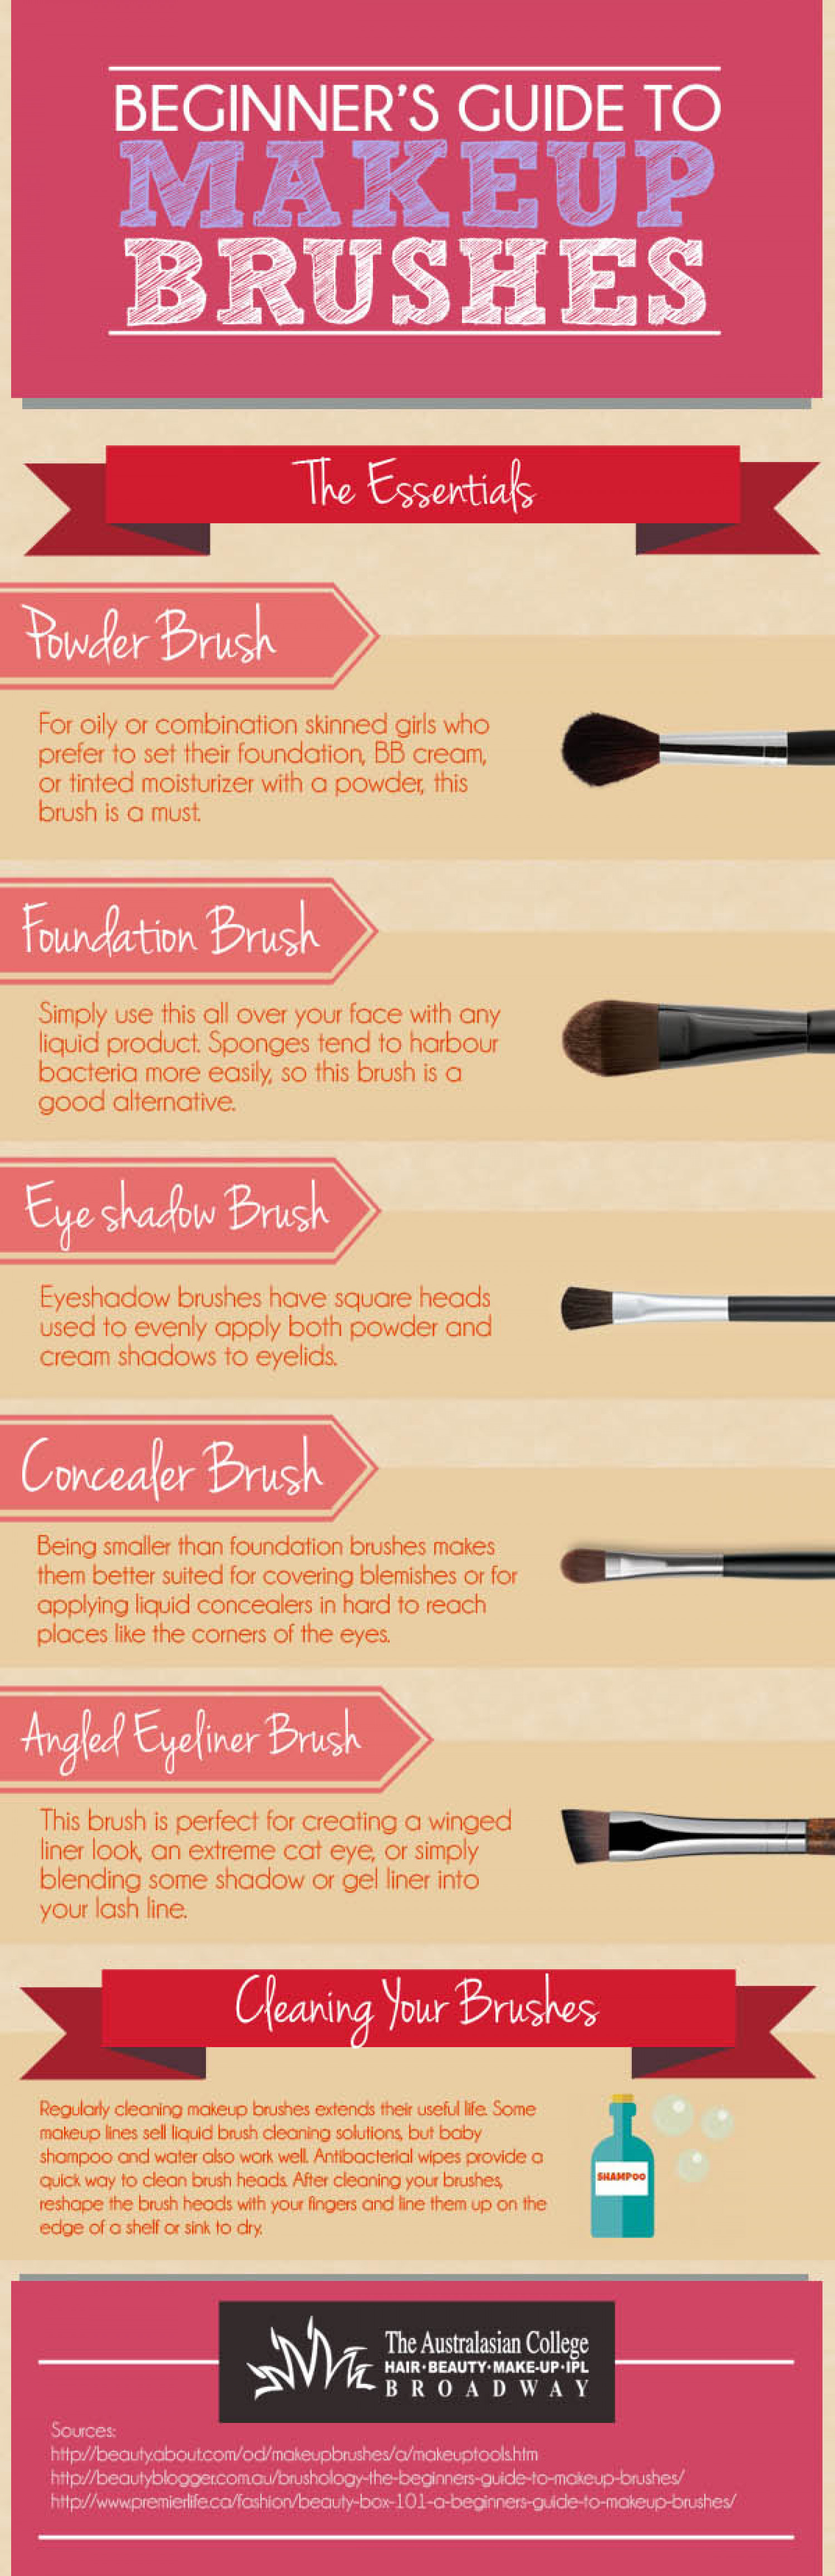 Beginner's Guide to Makeup Brushes Infographic